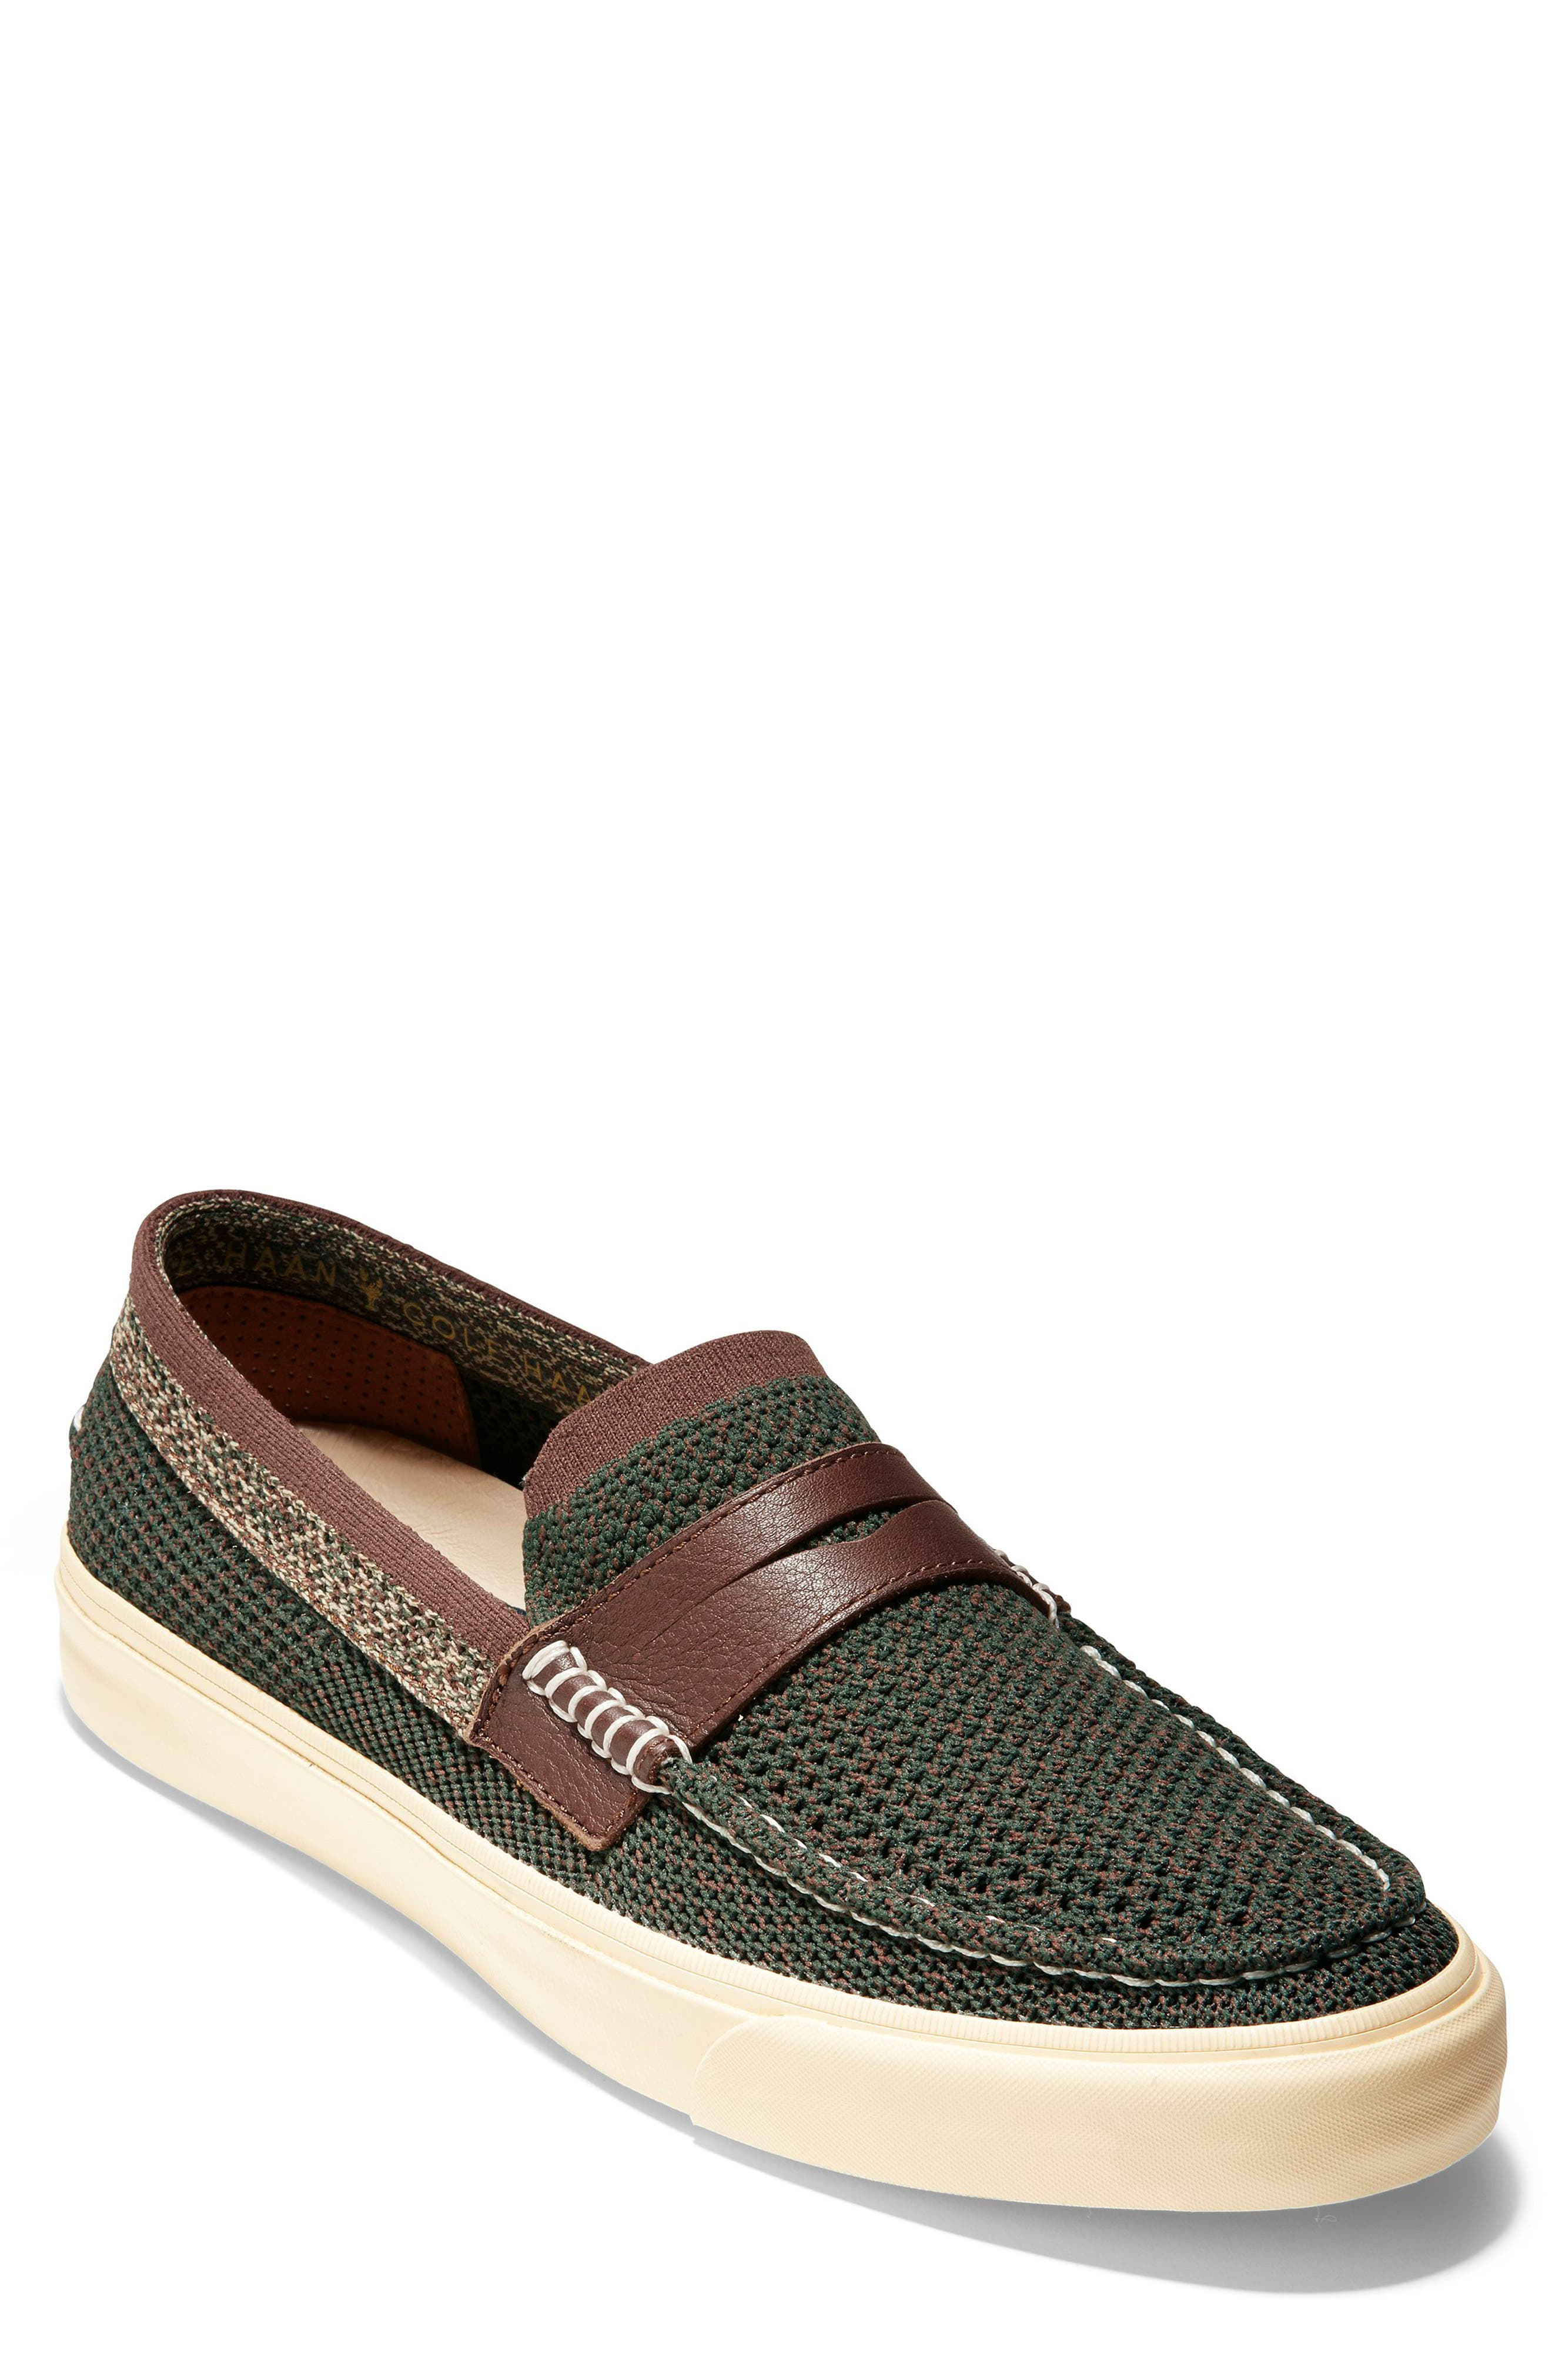 Cole Haan Pinch Weekend Lx Penny Loafer, Green